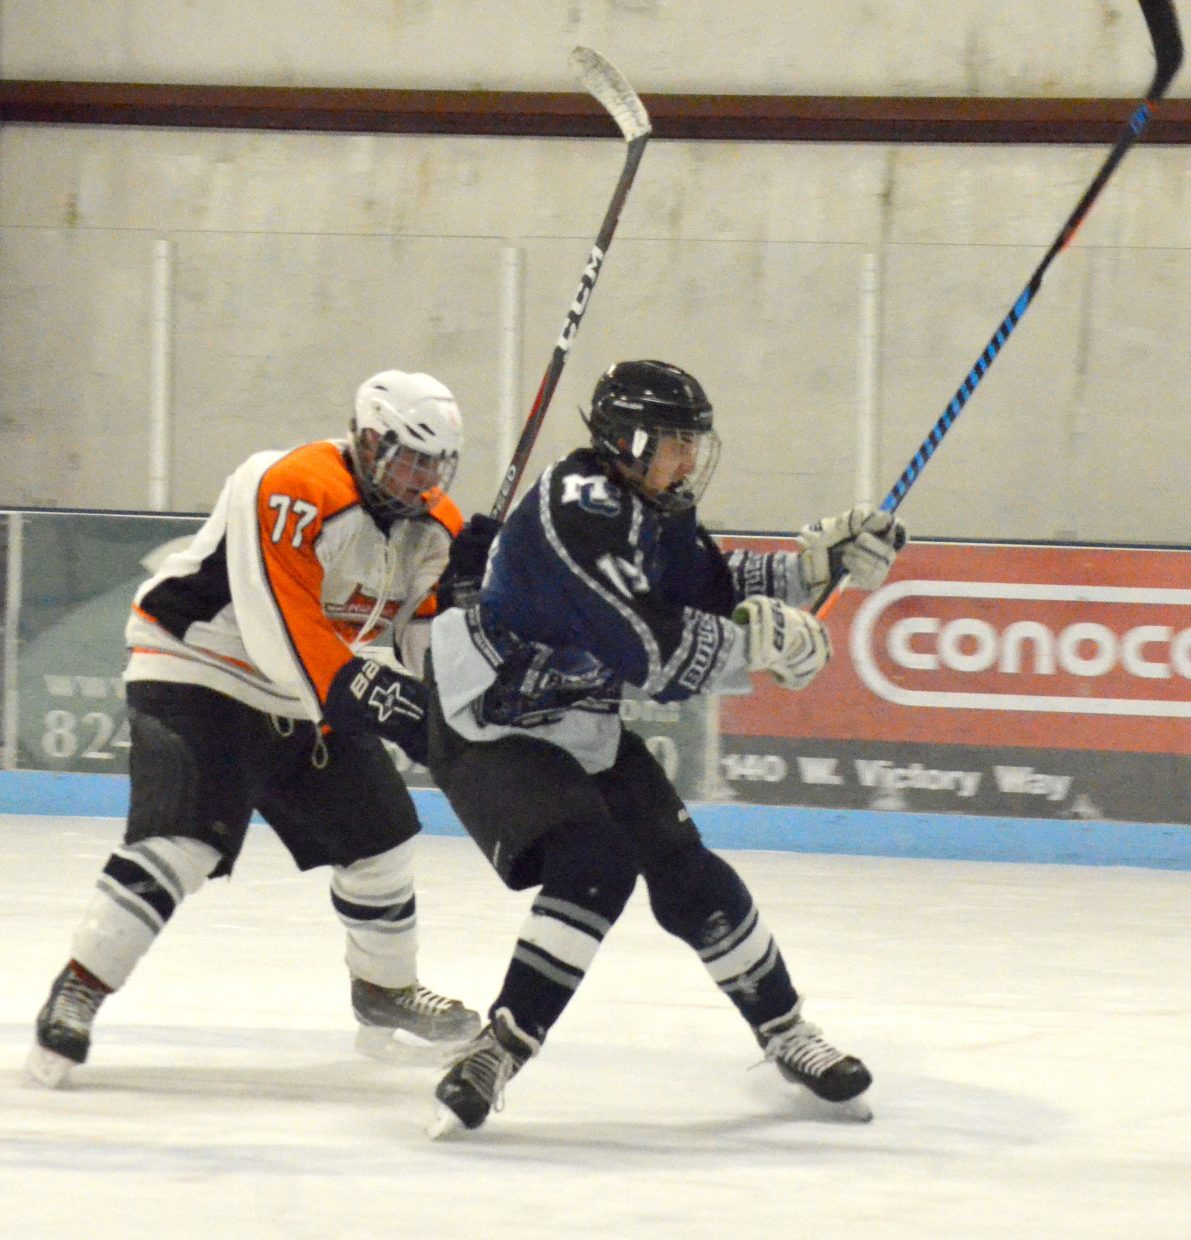 Colton Lodato gets off a shot during Moffat County Bulldogs' game against Hyland Hills.